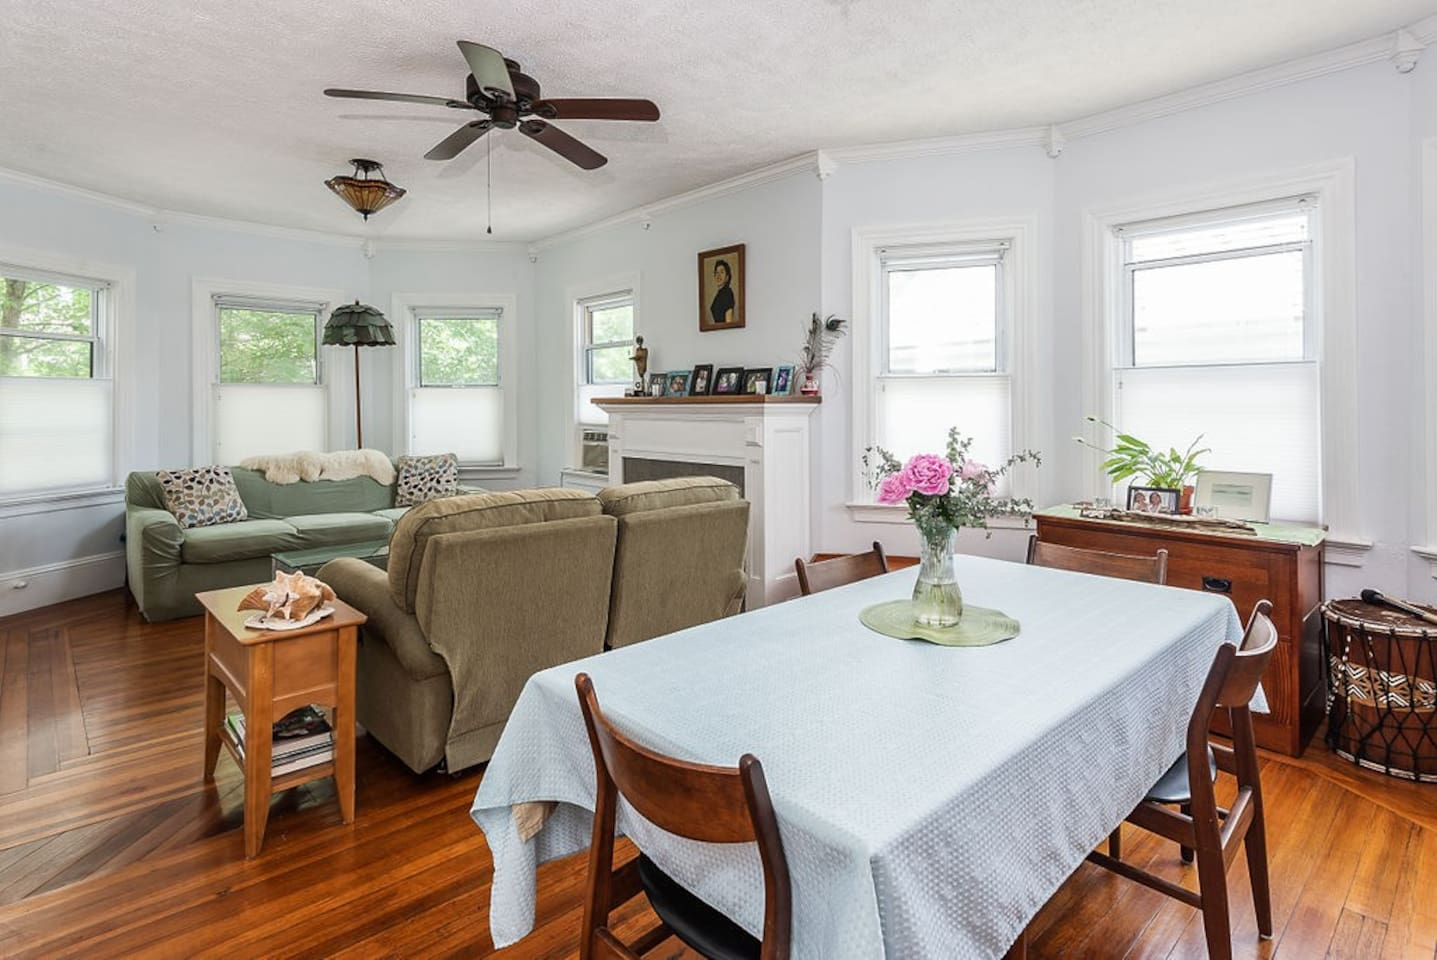 East Side, Light filled, airy living room and dining room